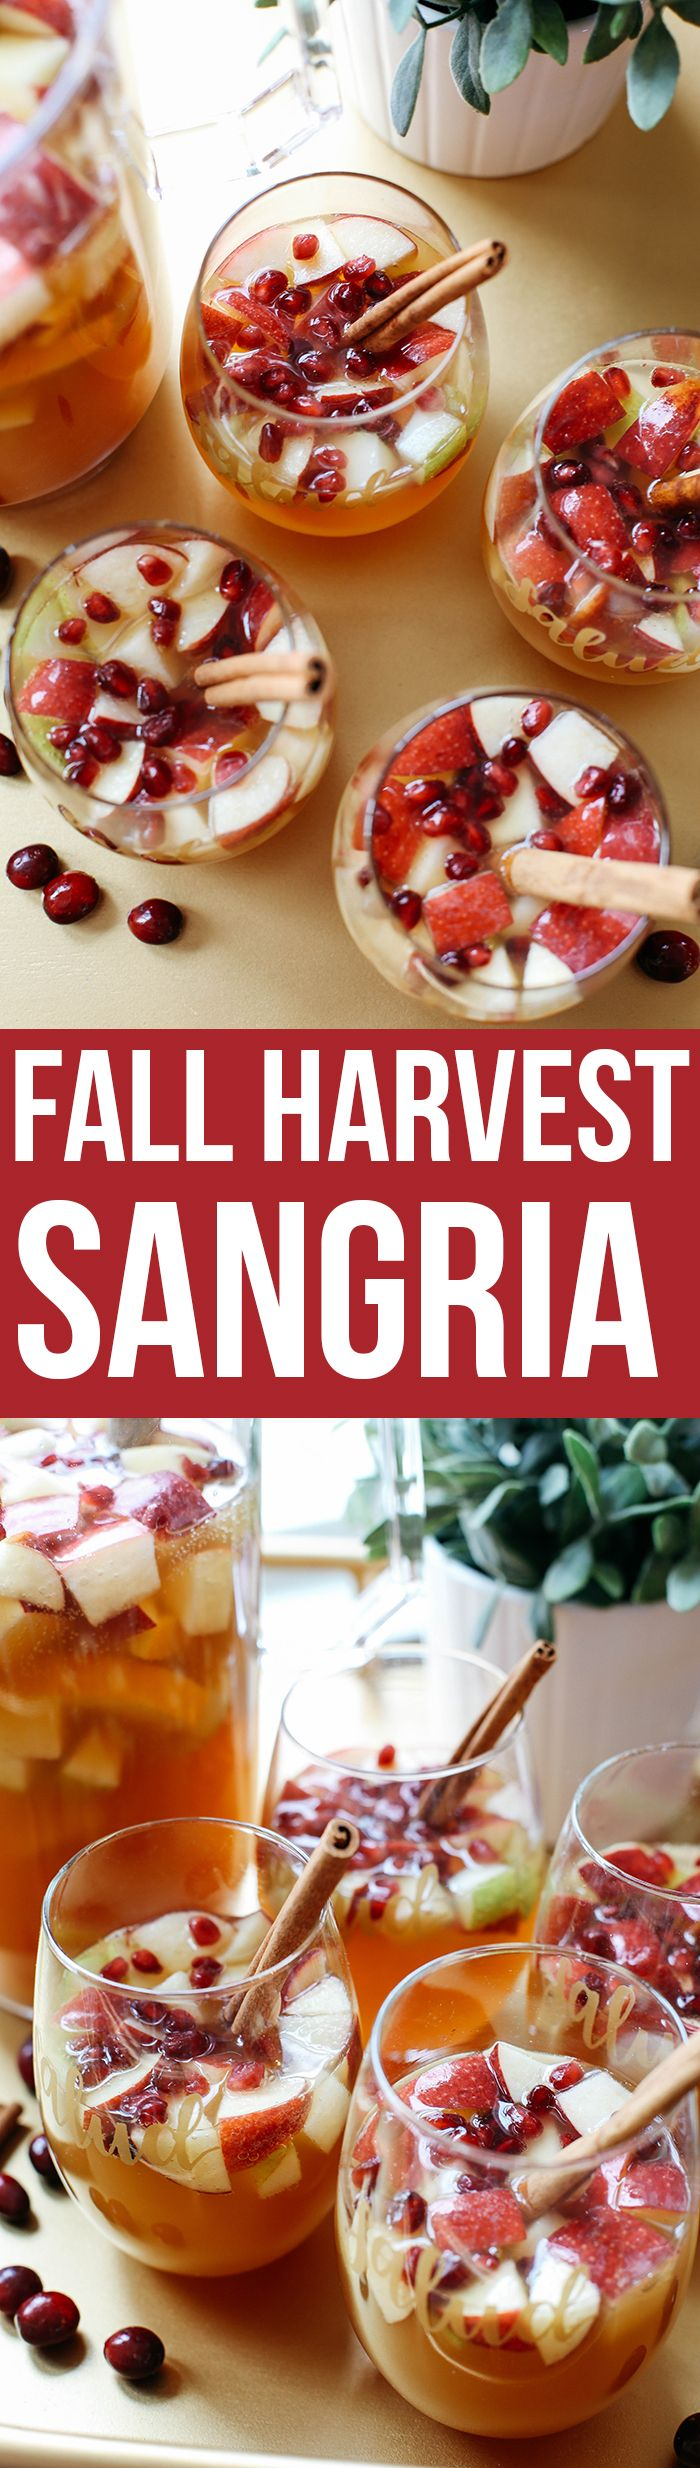 This Fall Harvest Sangria is the perfect holiday cocktail filled with crisp apples, pears, cranberries, cinnamon sticks and fresh apple cider!